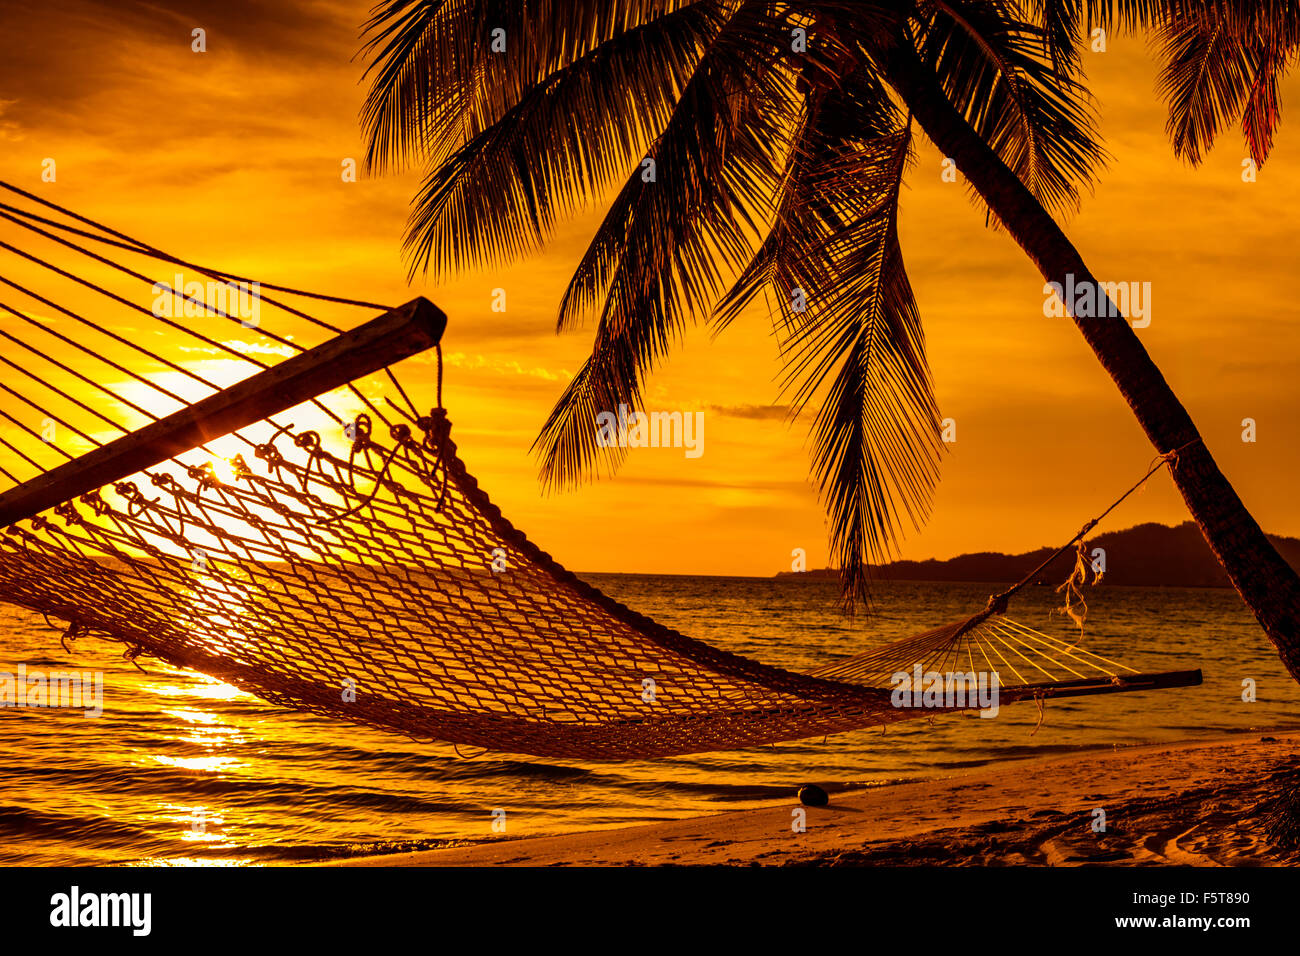 Silhouette of hammock and palm trees on a tropical beach at sunset - Stock Image